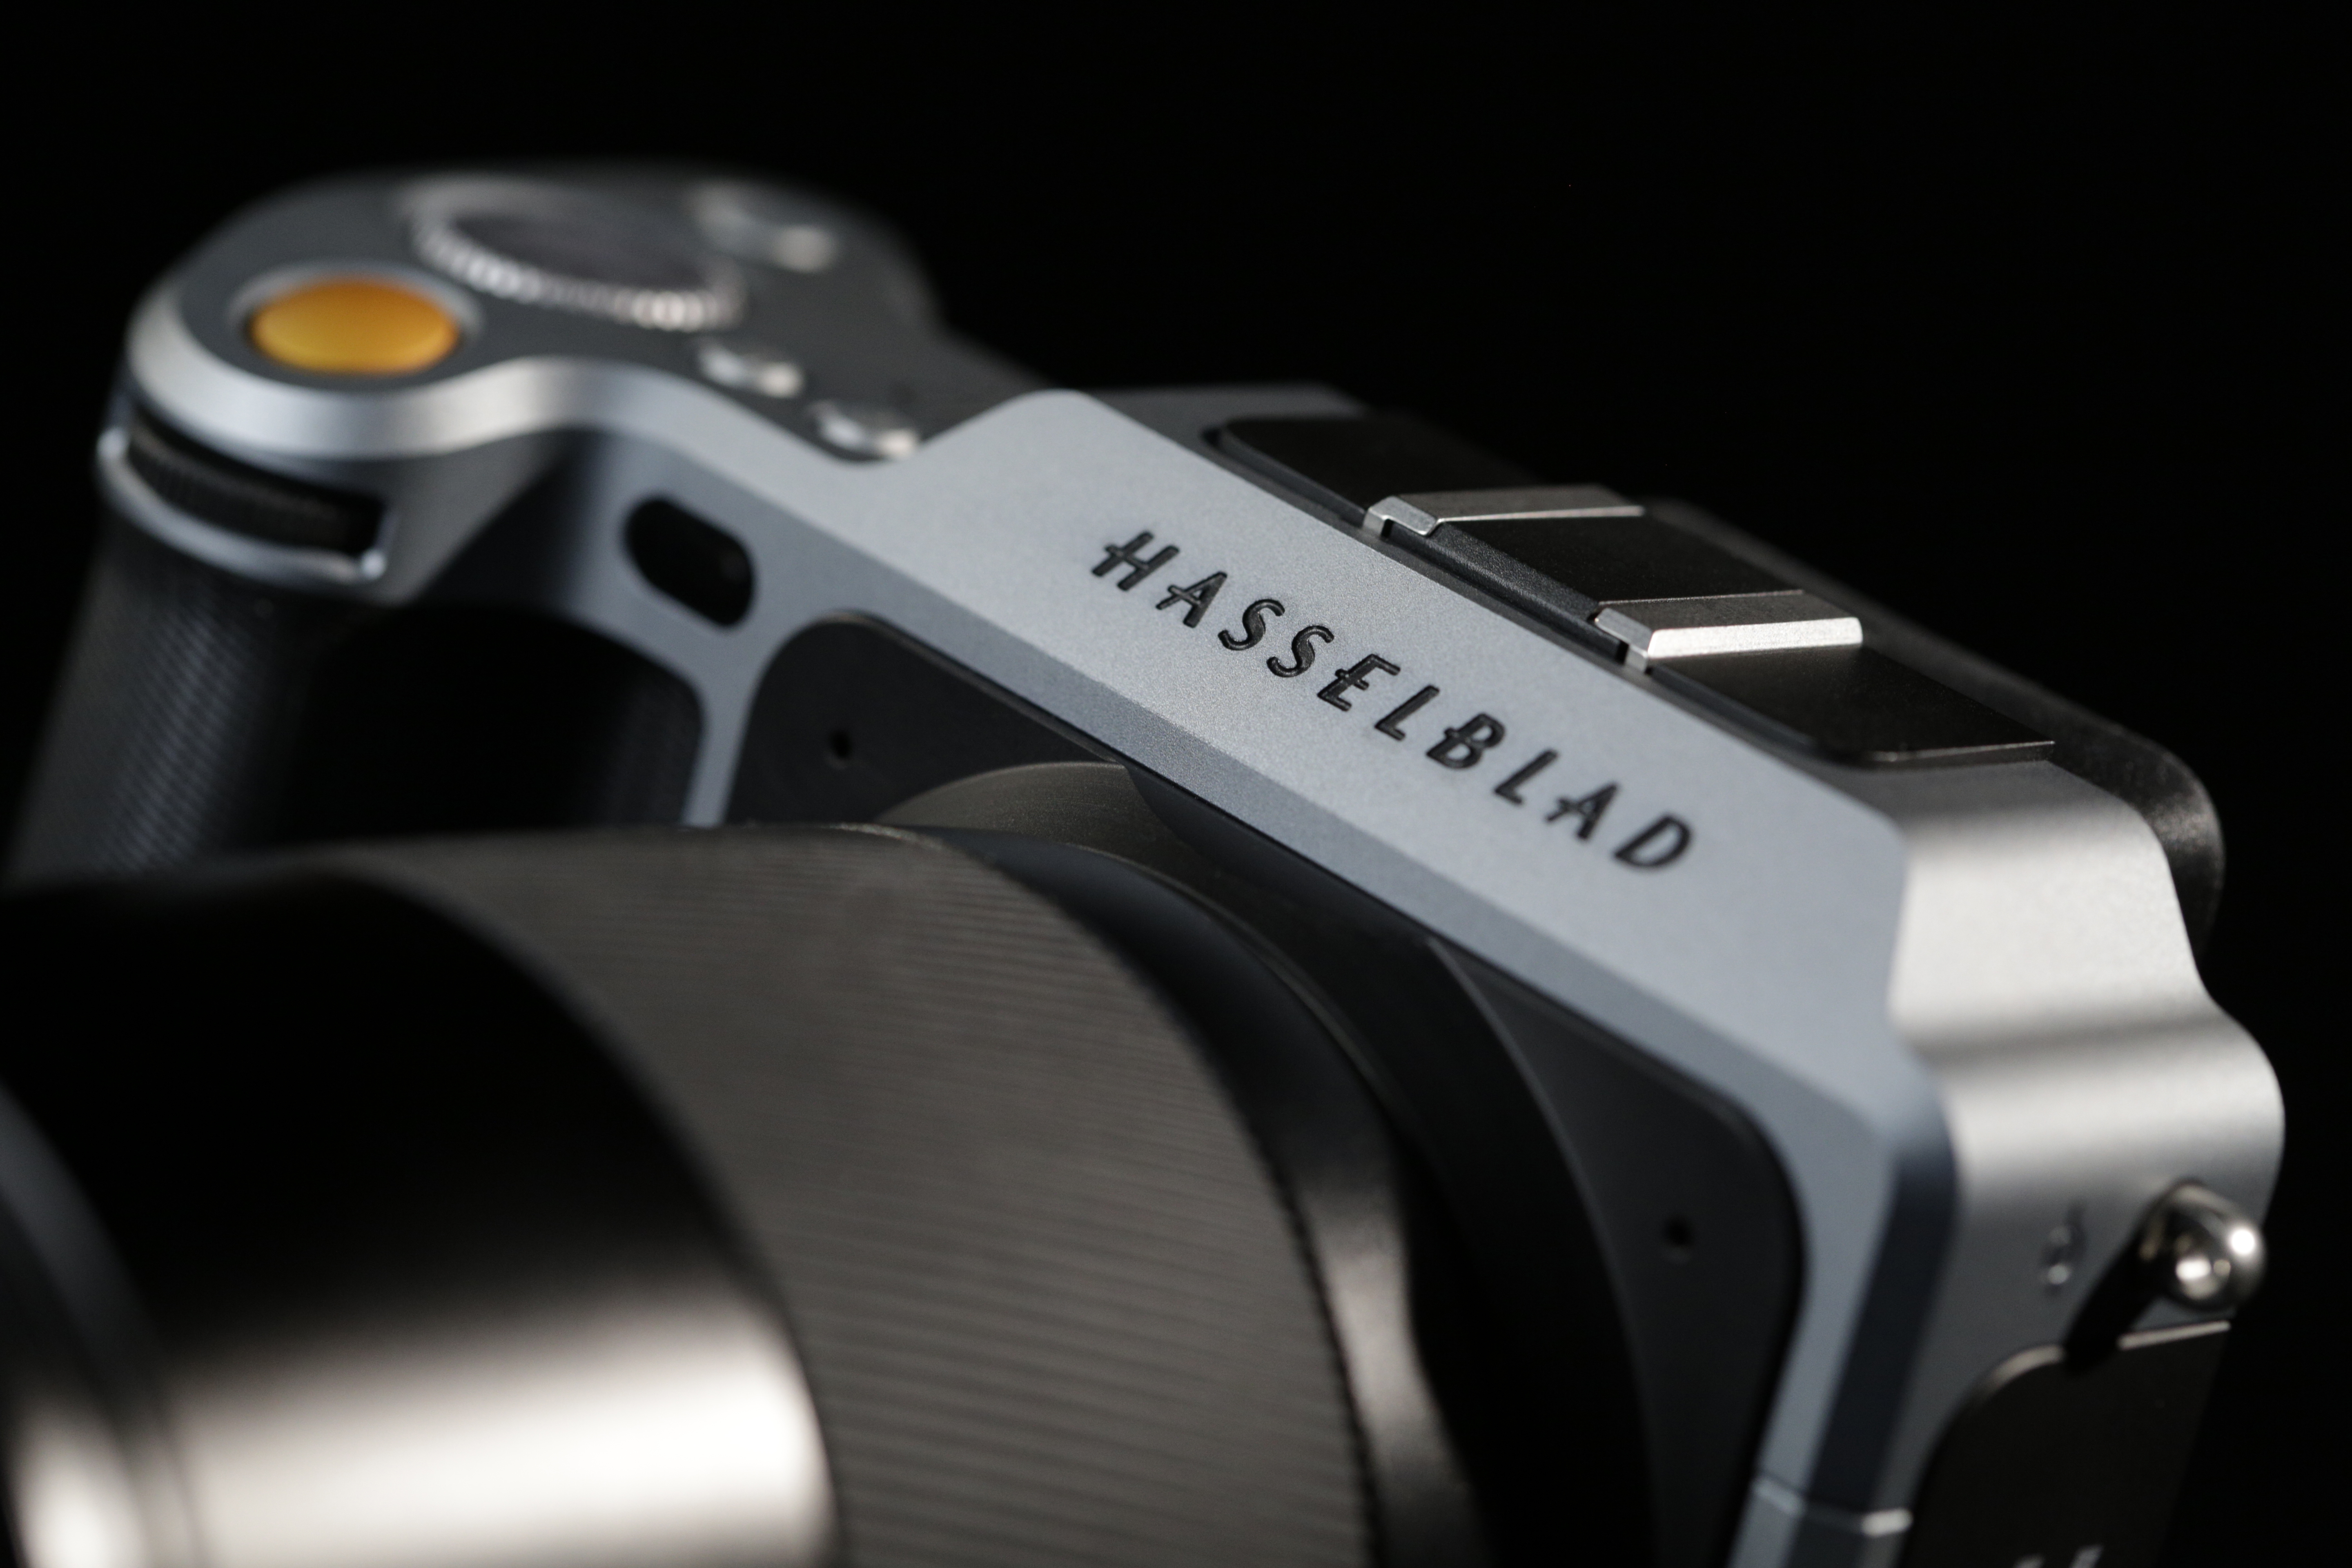 Medium Format Mirrorless Has Arrived: The Hasselblad X1D ...